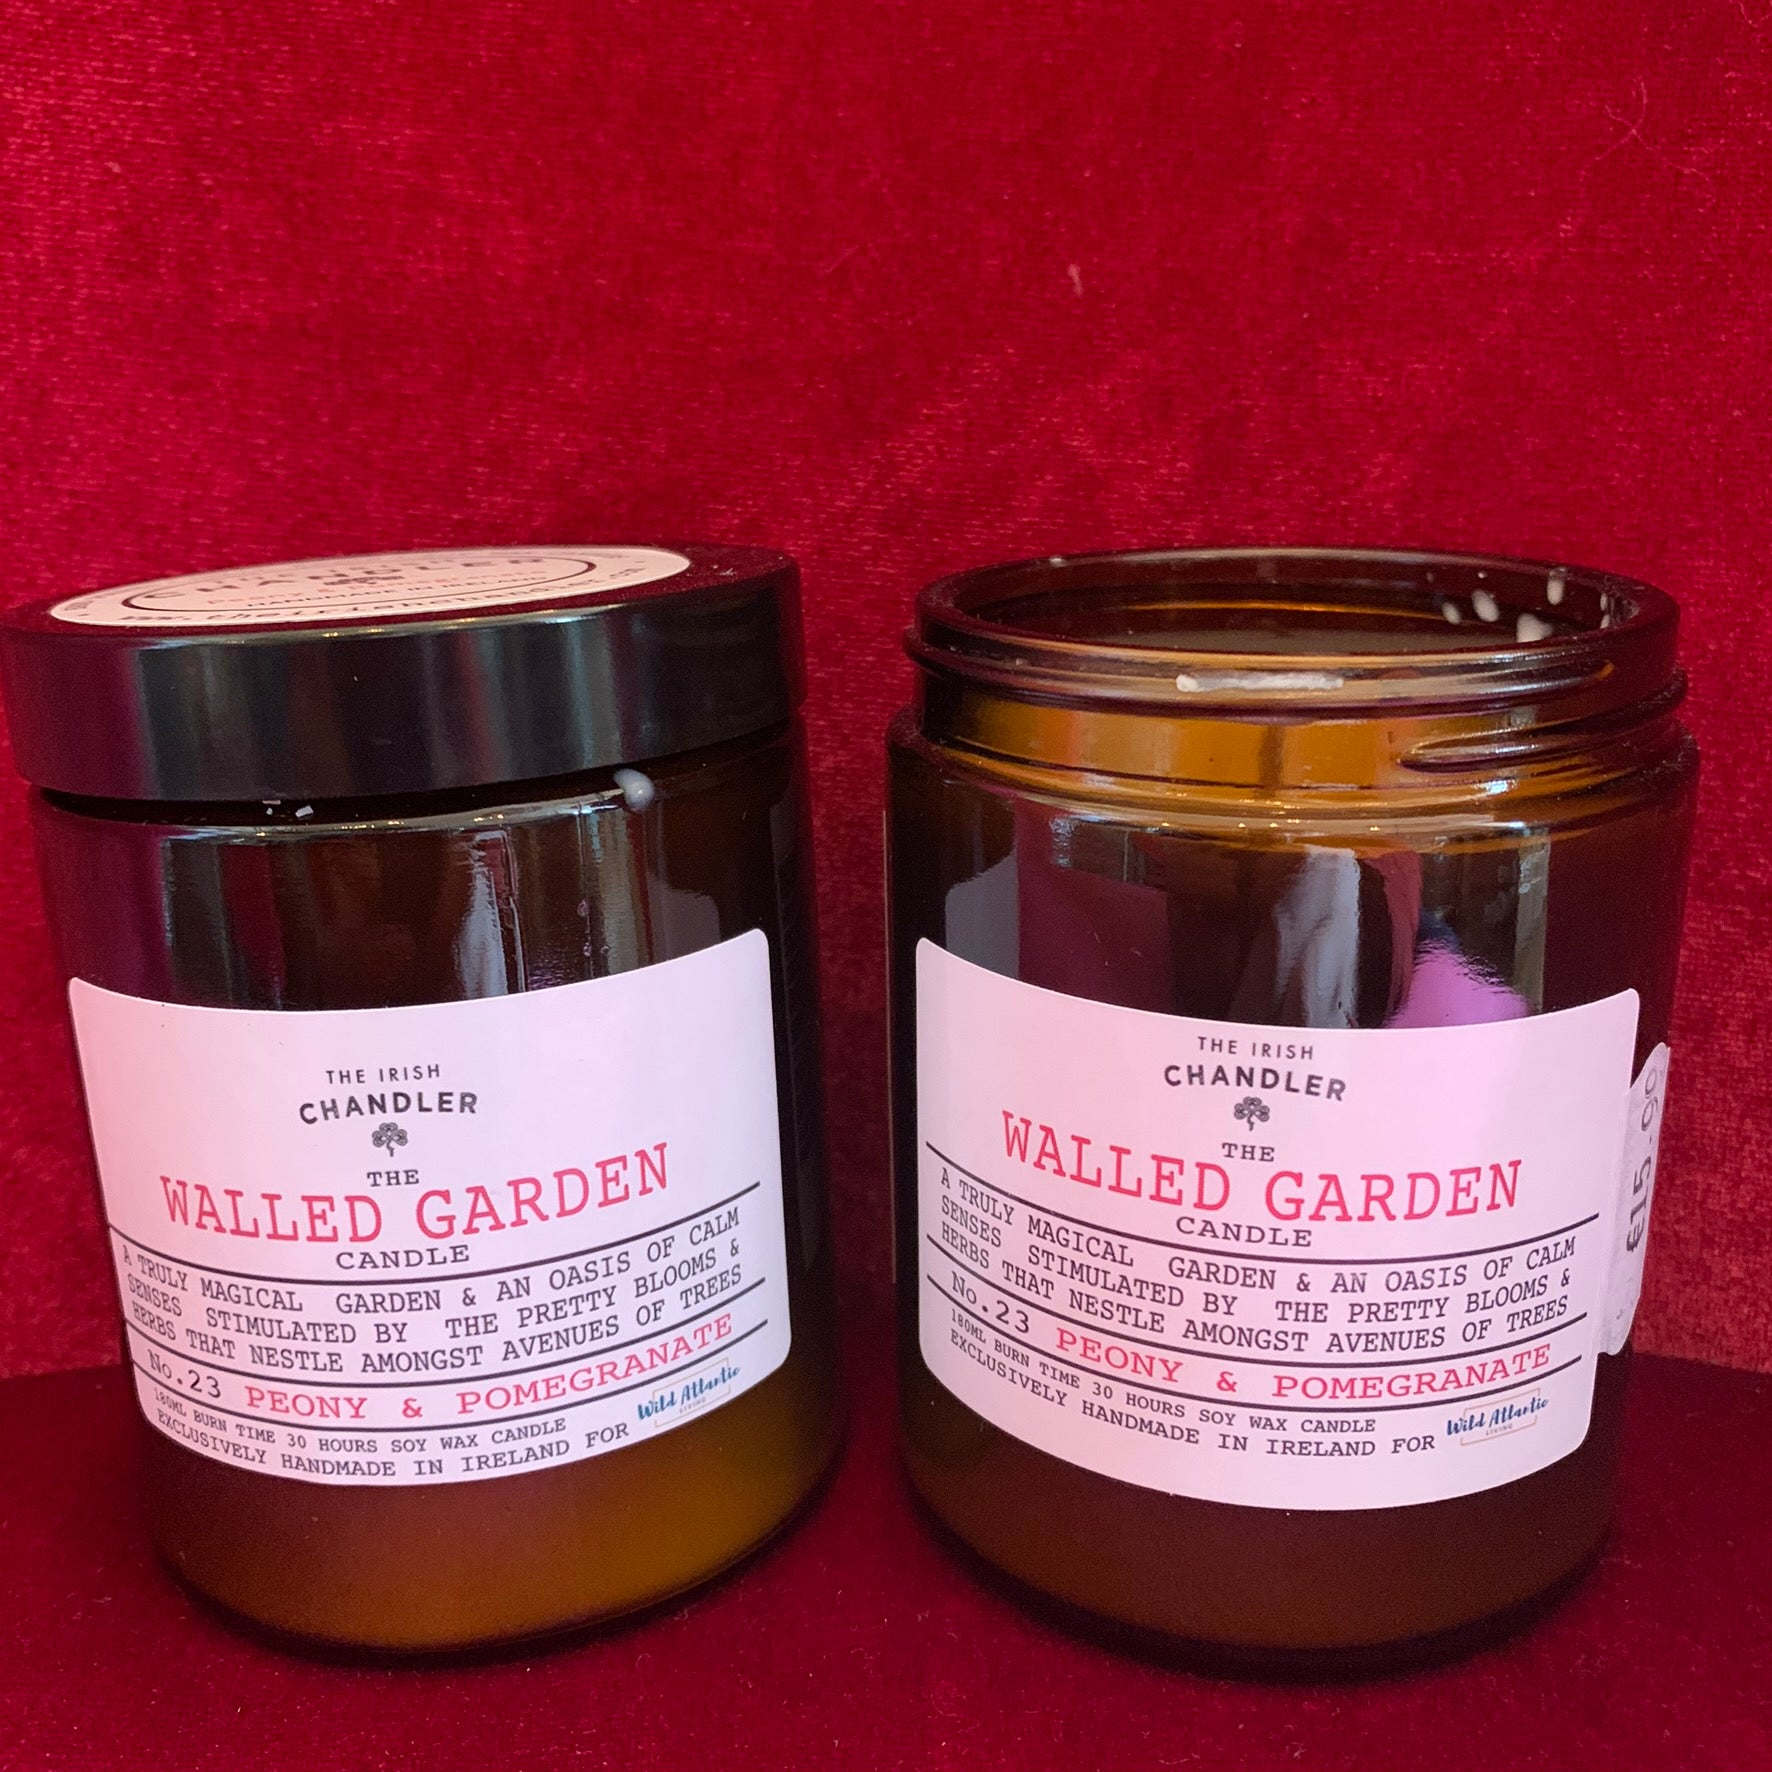 EXCLUSIVE The Walled Garden Candle - Wild Atlantic Living